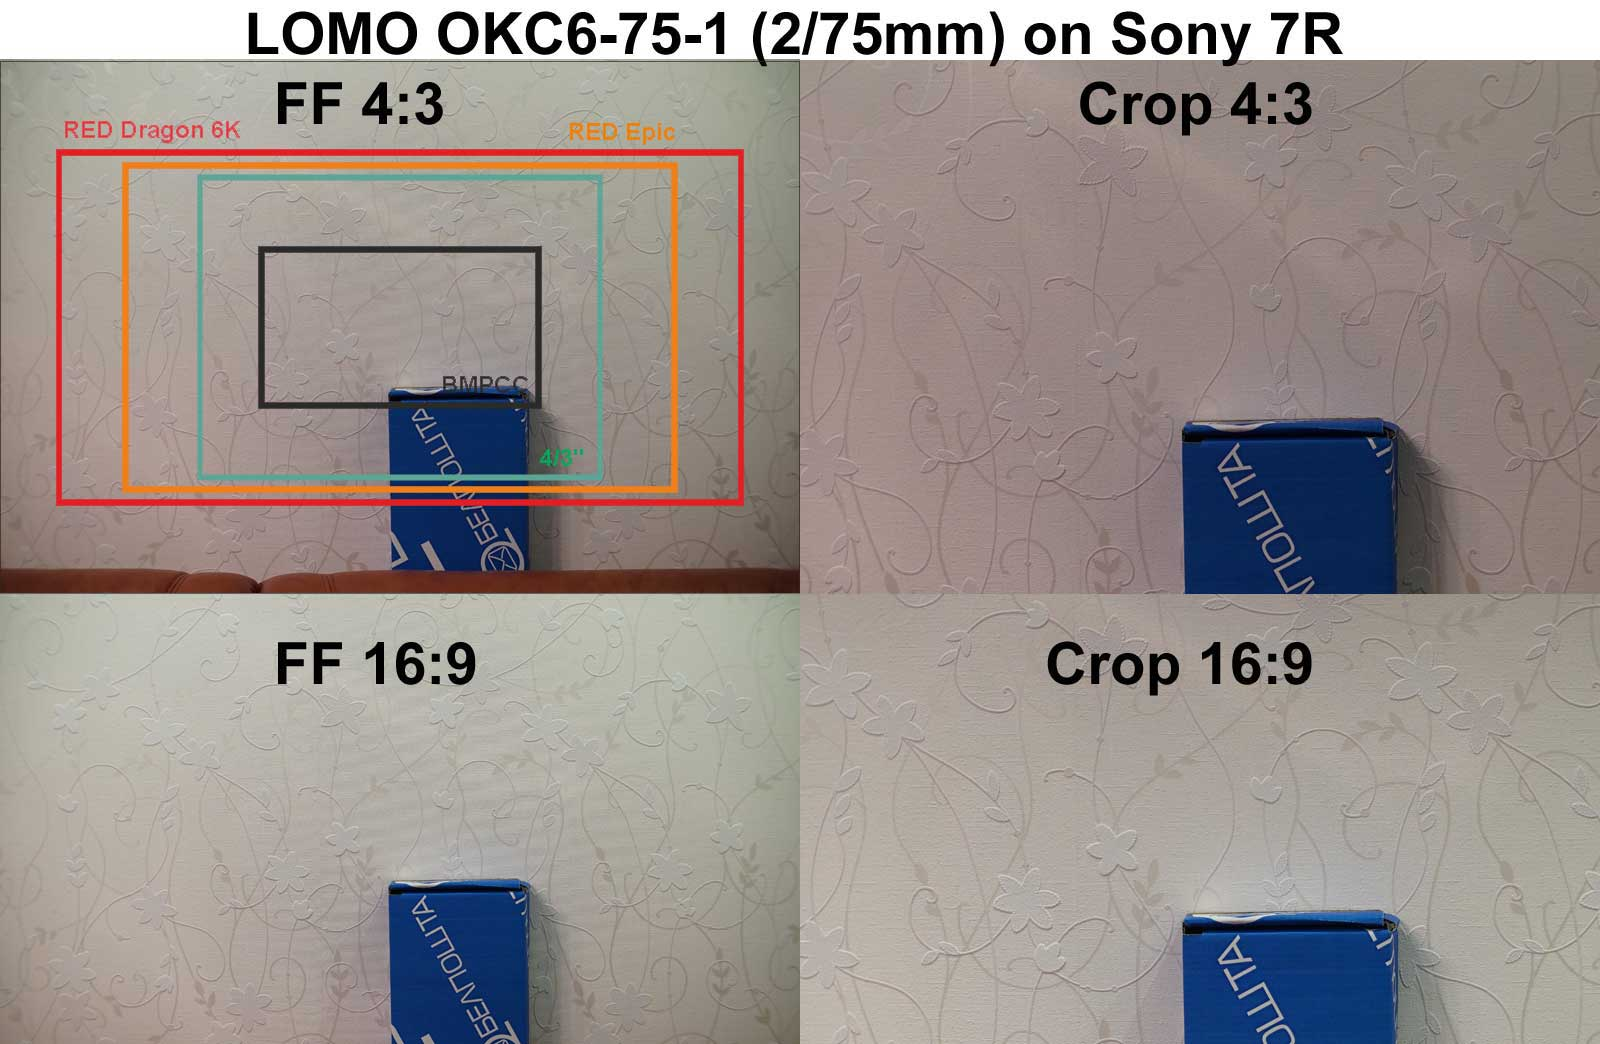 Coverage of LOMO OKC6-75-11 lens on Sony 7R camera